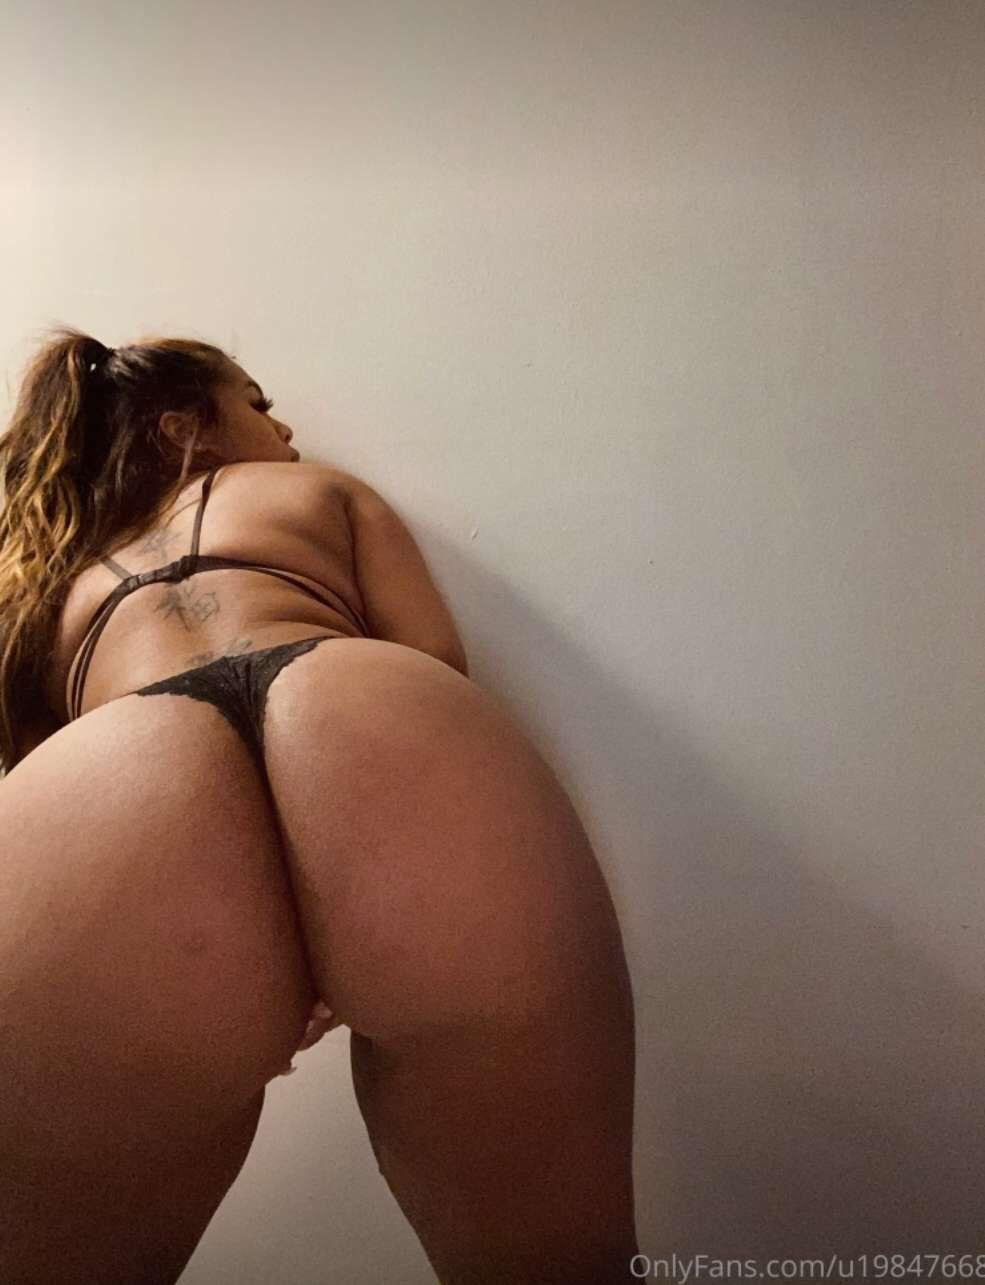 FULL VIDEO: Trinny Badazz Nude Onlyfans!